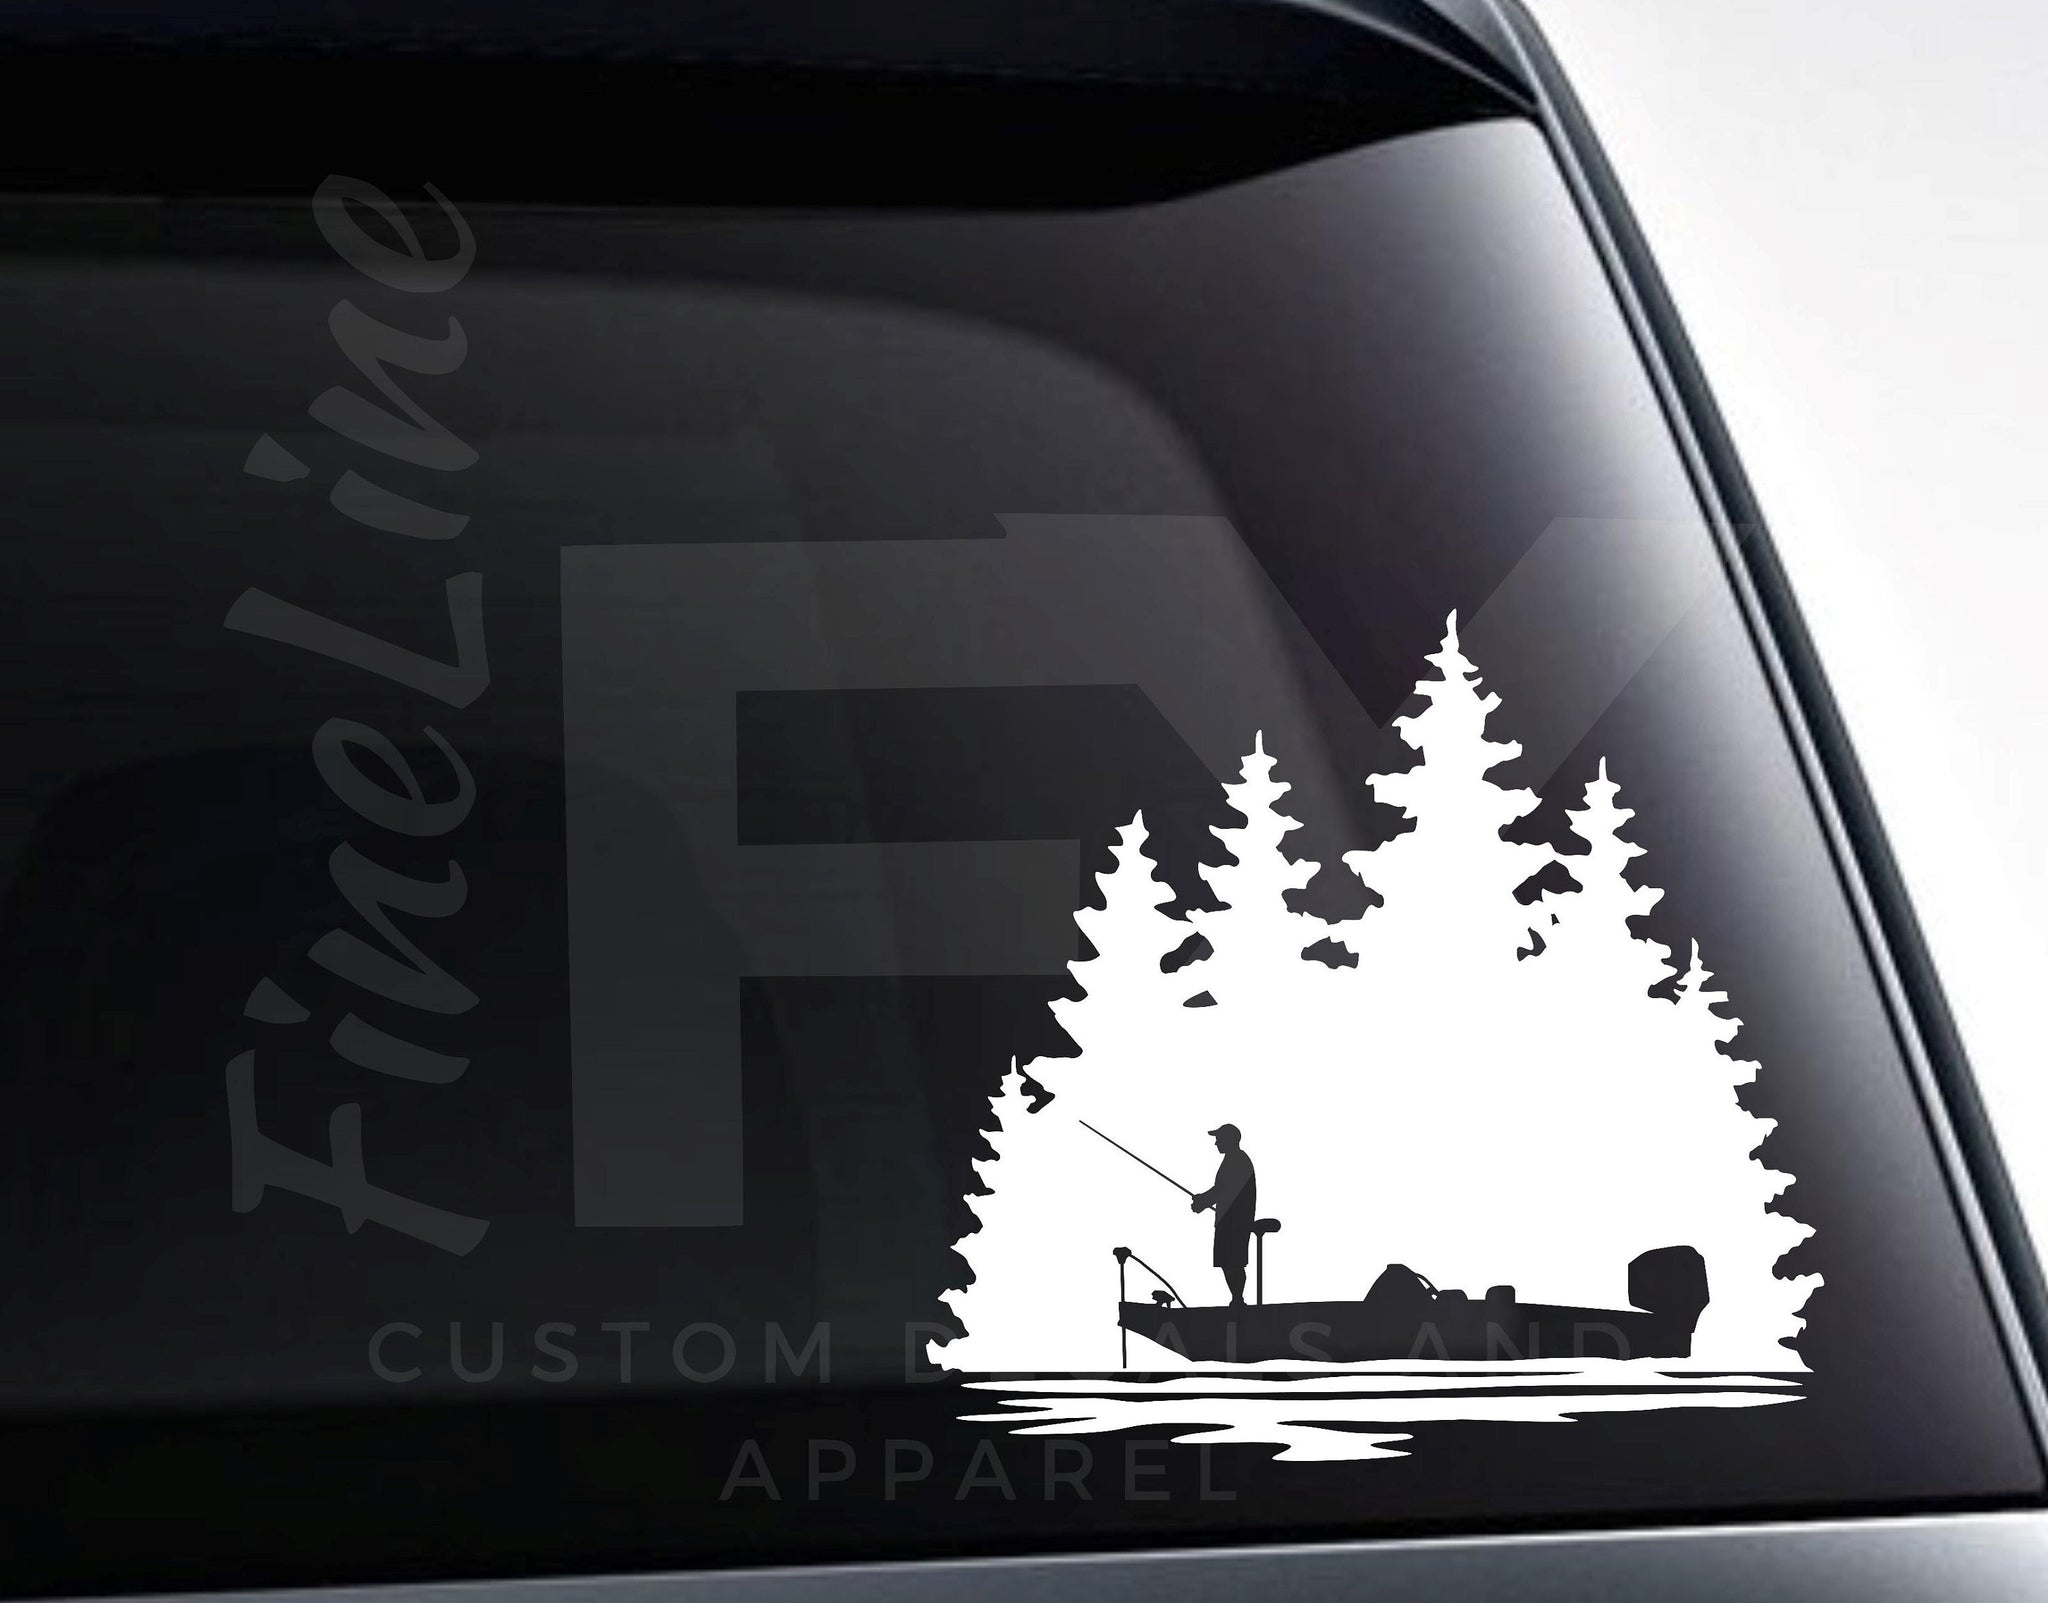 Bass Fishing Bass Boat Fisherman Vinyl Decal Sticker